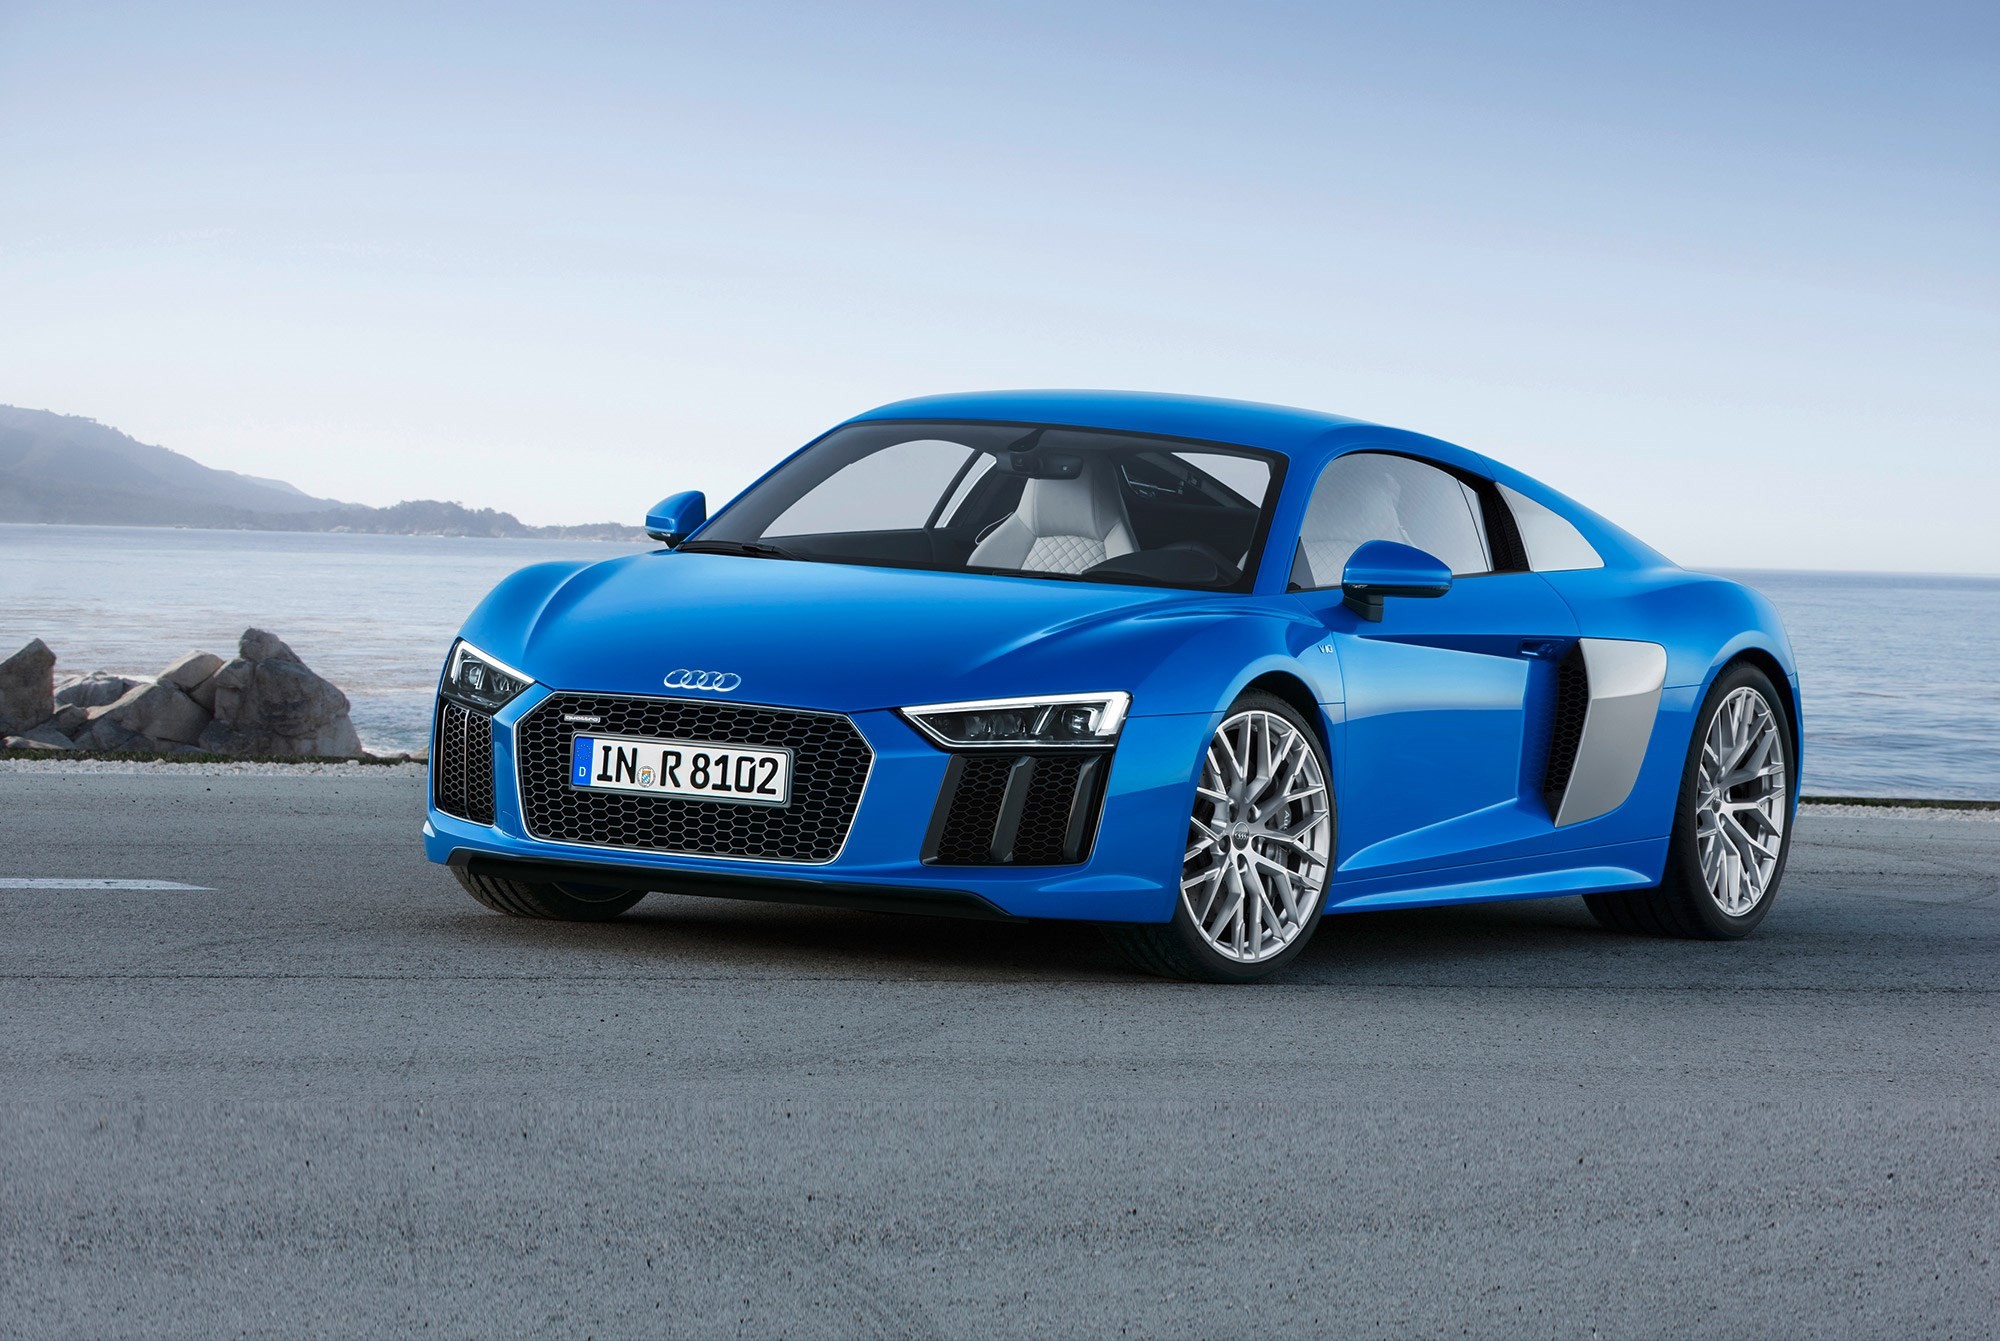 more info on audi r8 view all audi r8 cars for sale view all audi r8